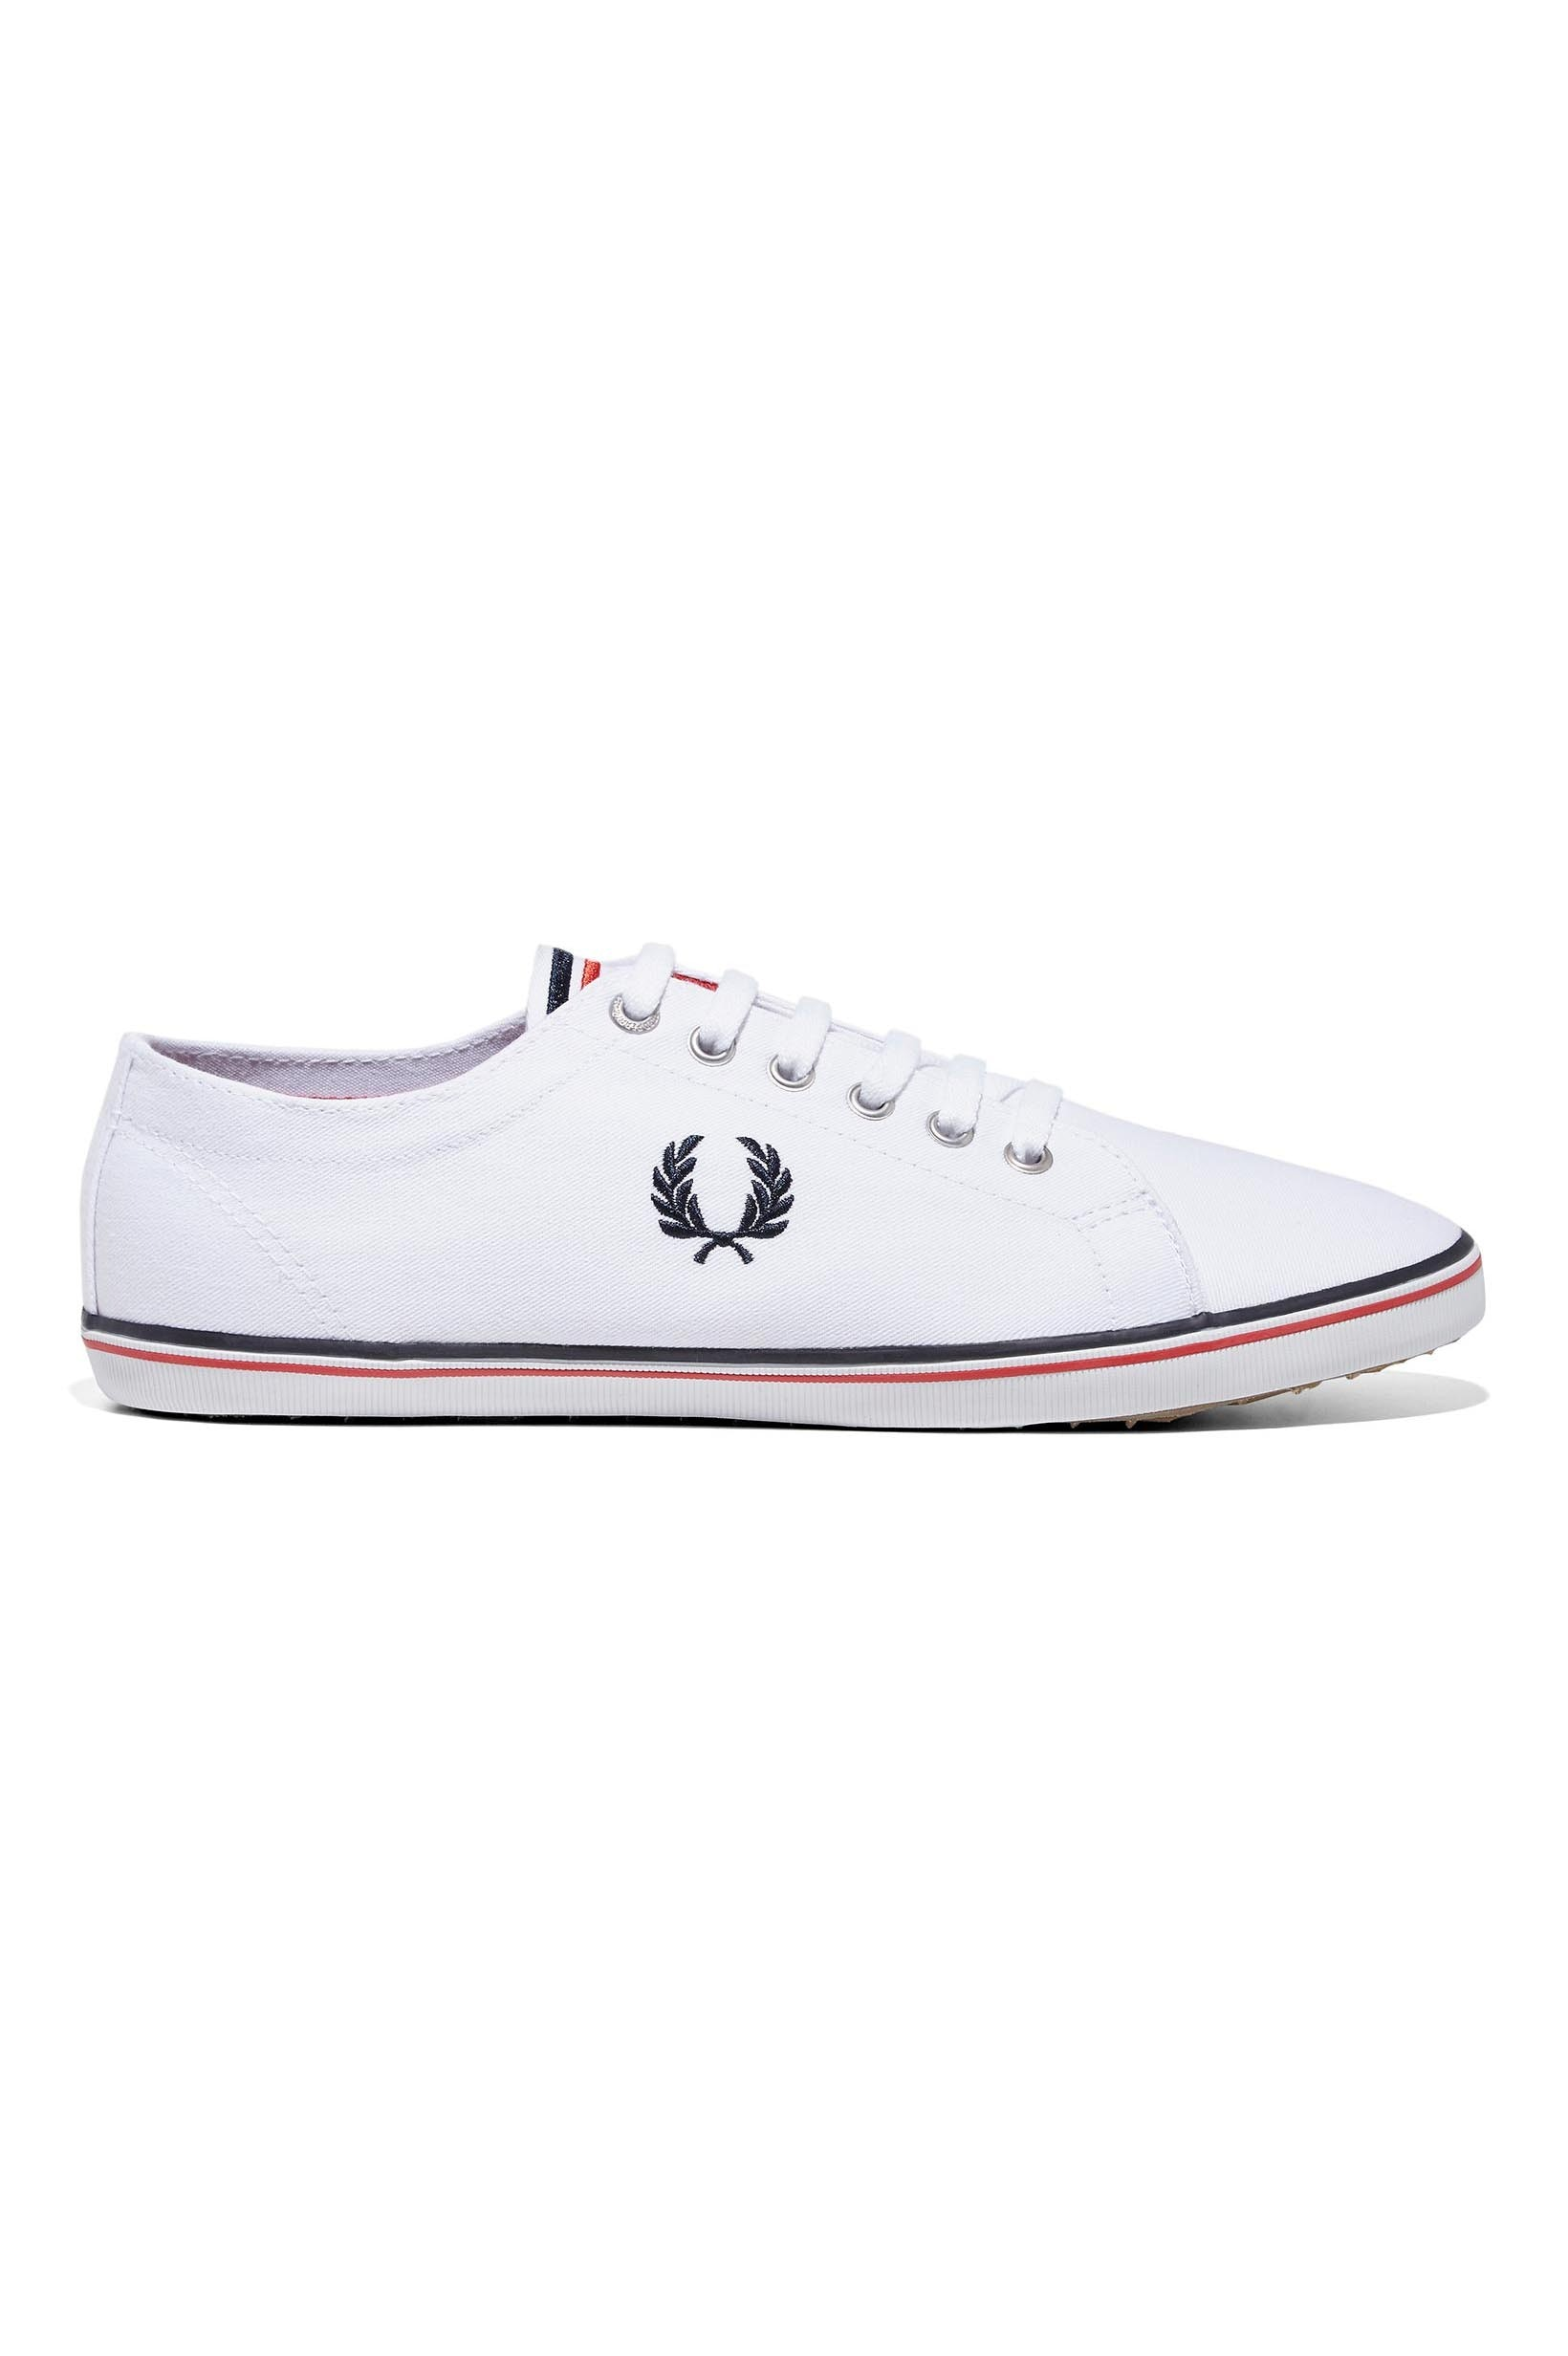 Fred Perry - Kingston Twill White  /  Navy  /  England Red